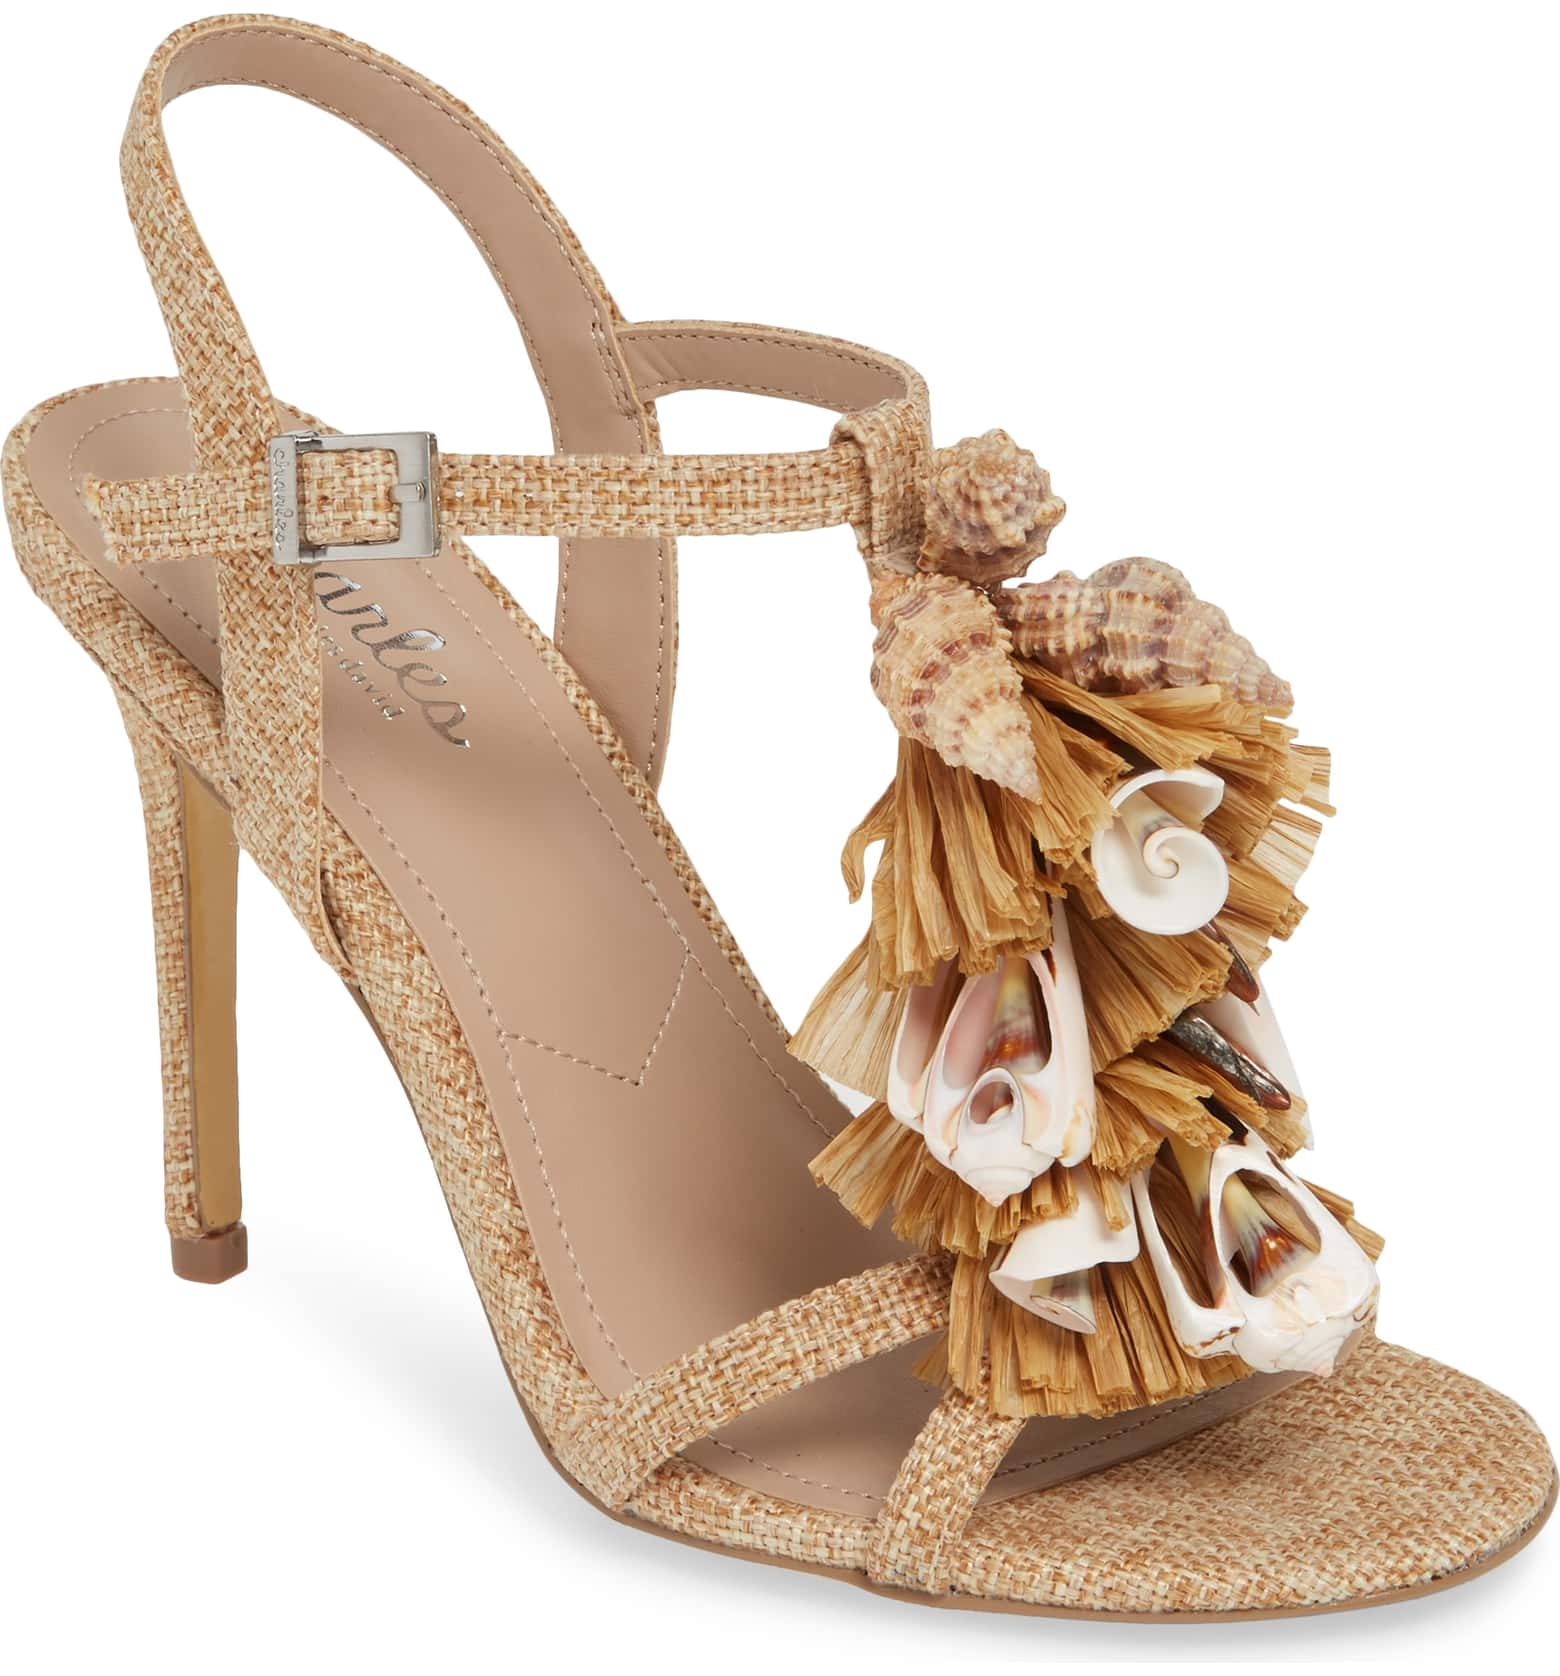 https://shop.nordstrom.com/s/charles-by-charles-david-radical-embellished-sandal-women/5204173?origin=category-personalizedsort&breadcrumb=Home%2FWomen%2FShoes%2FSandals&color=sand%20fabric